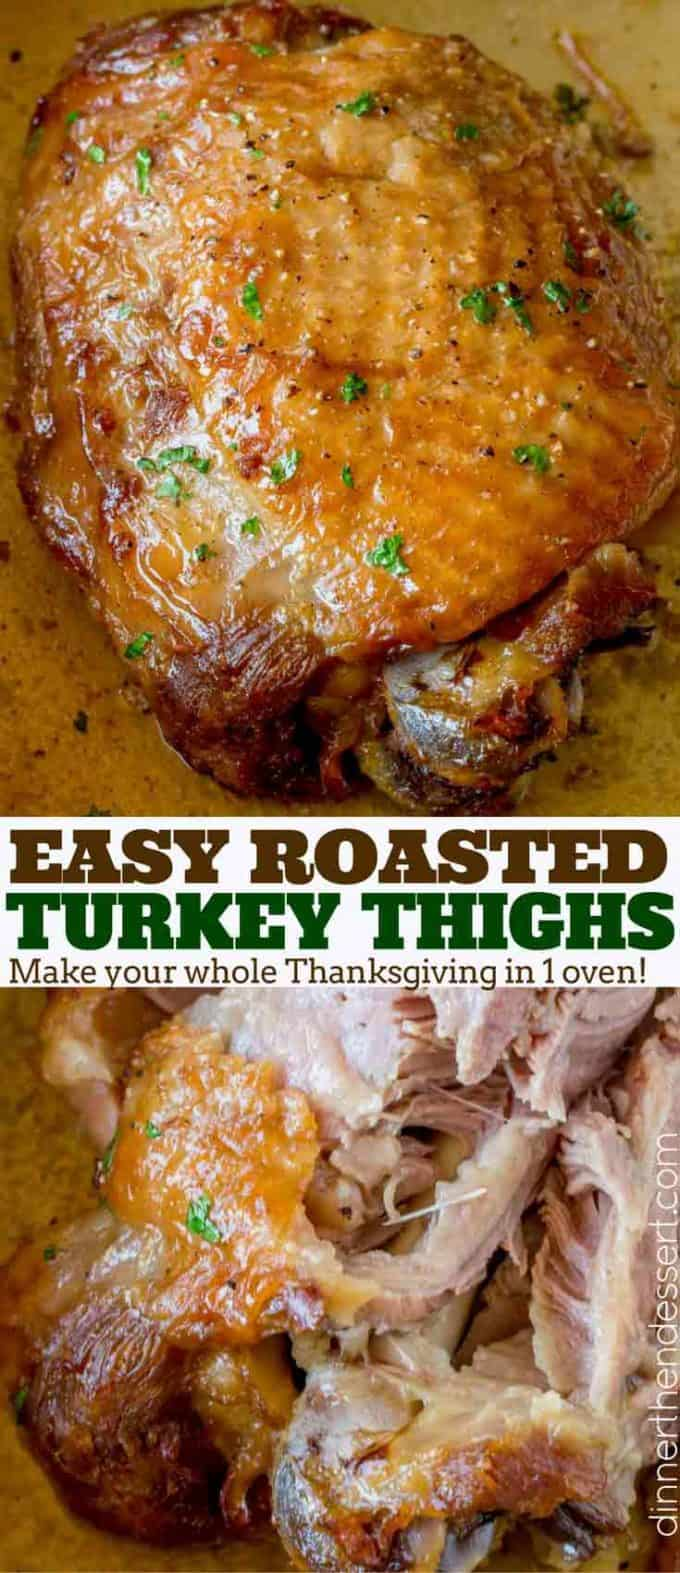 Easy Roasted Turkey Thighs - Dinner, then Dessert